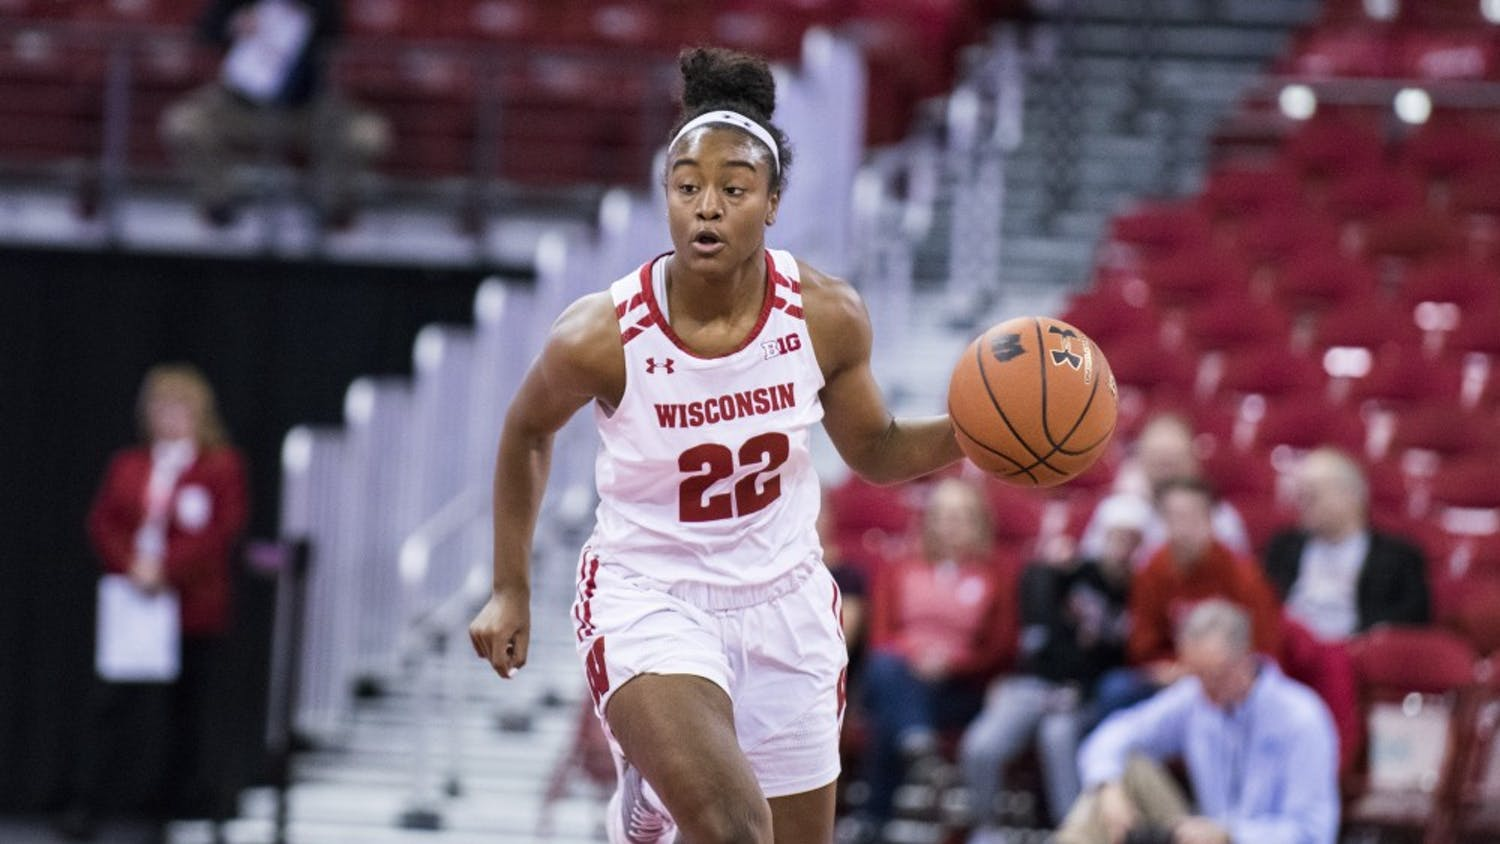 Niya Beverely recorded 10 points and six assists in UW's 71-55 first round win over Illinois, contributing to the team's season-high 22 assists in the game.